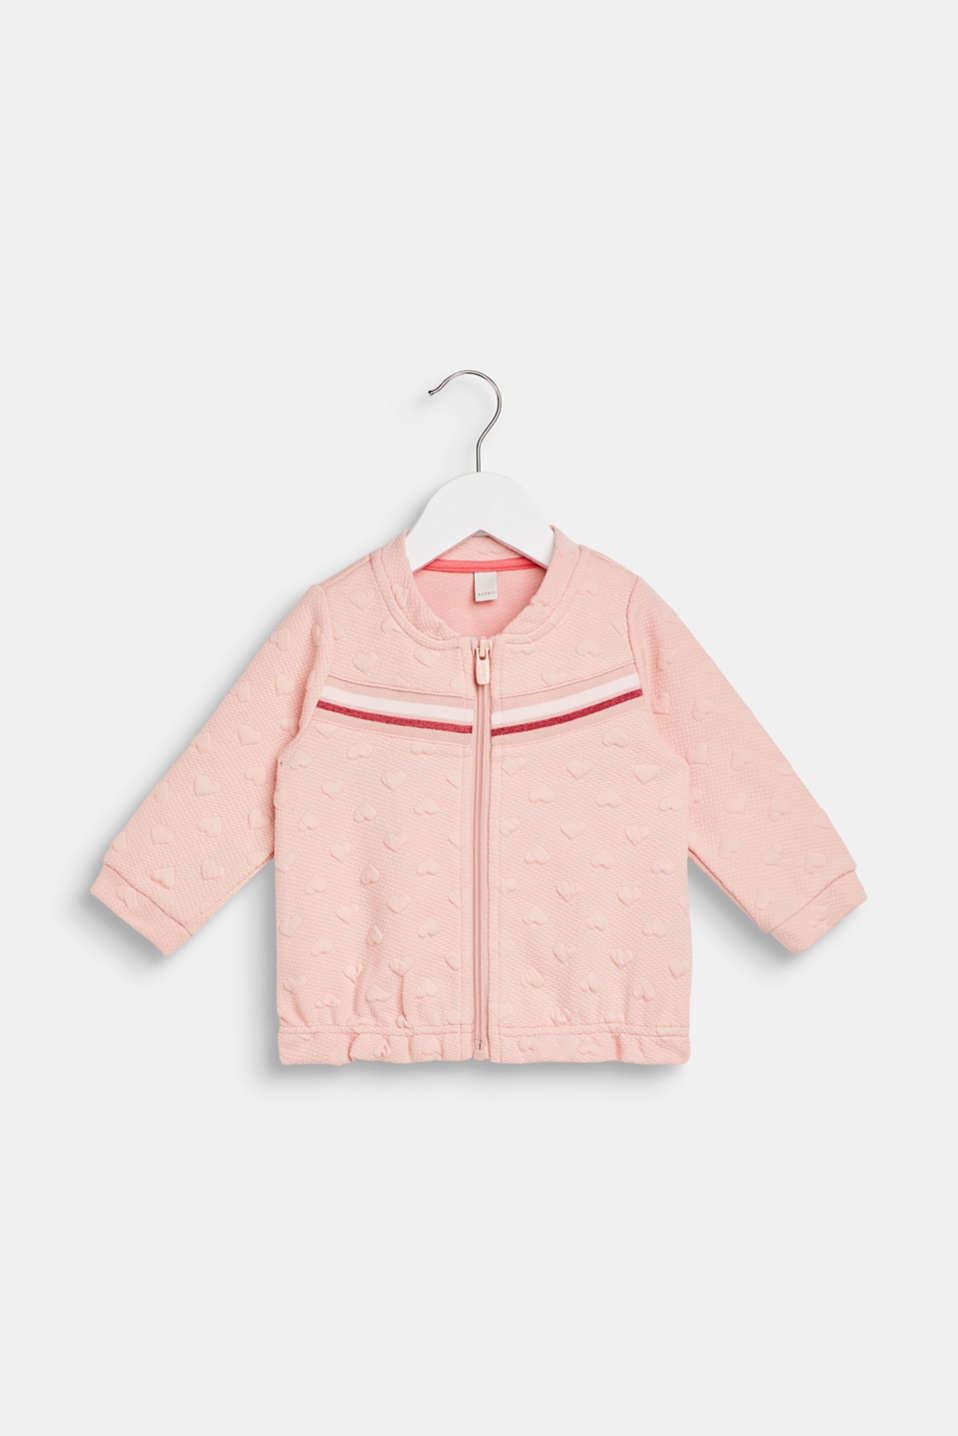 Sweatshirt fabric cardigan with a heart-shaped texture, LCLIGHT BLUSH, detail image number 0